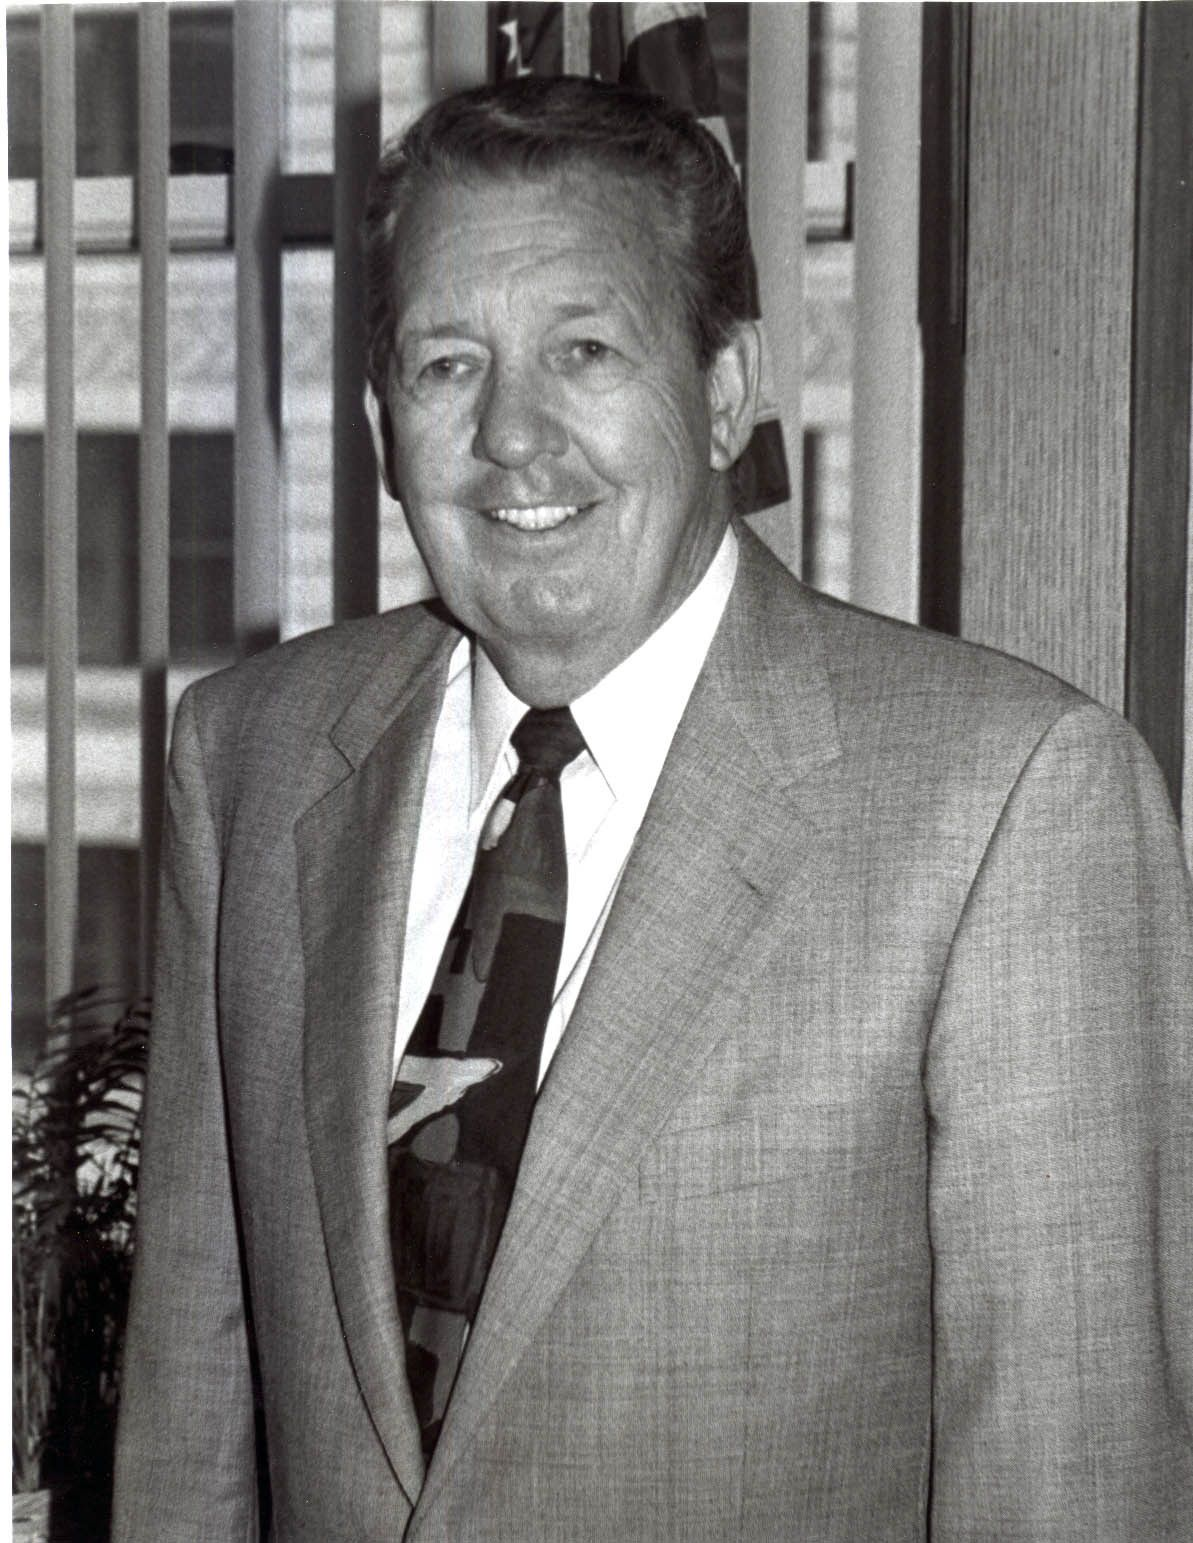 Cook County Commissioner Al Carr, R- Cicero, in 2002.